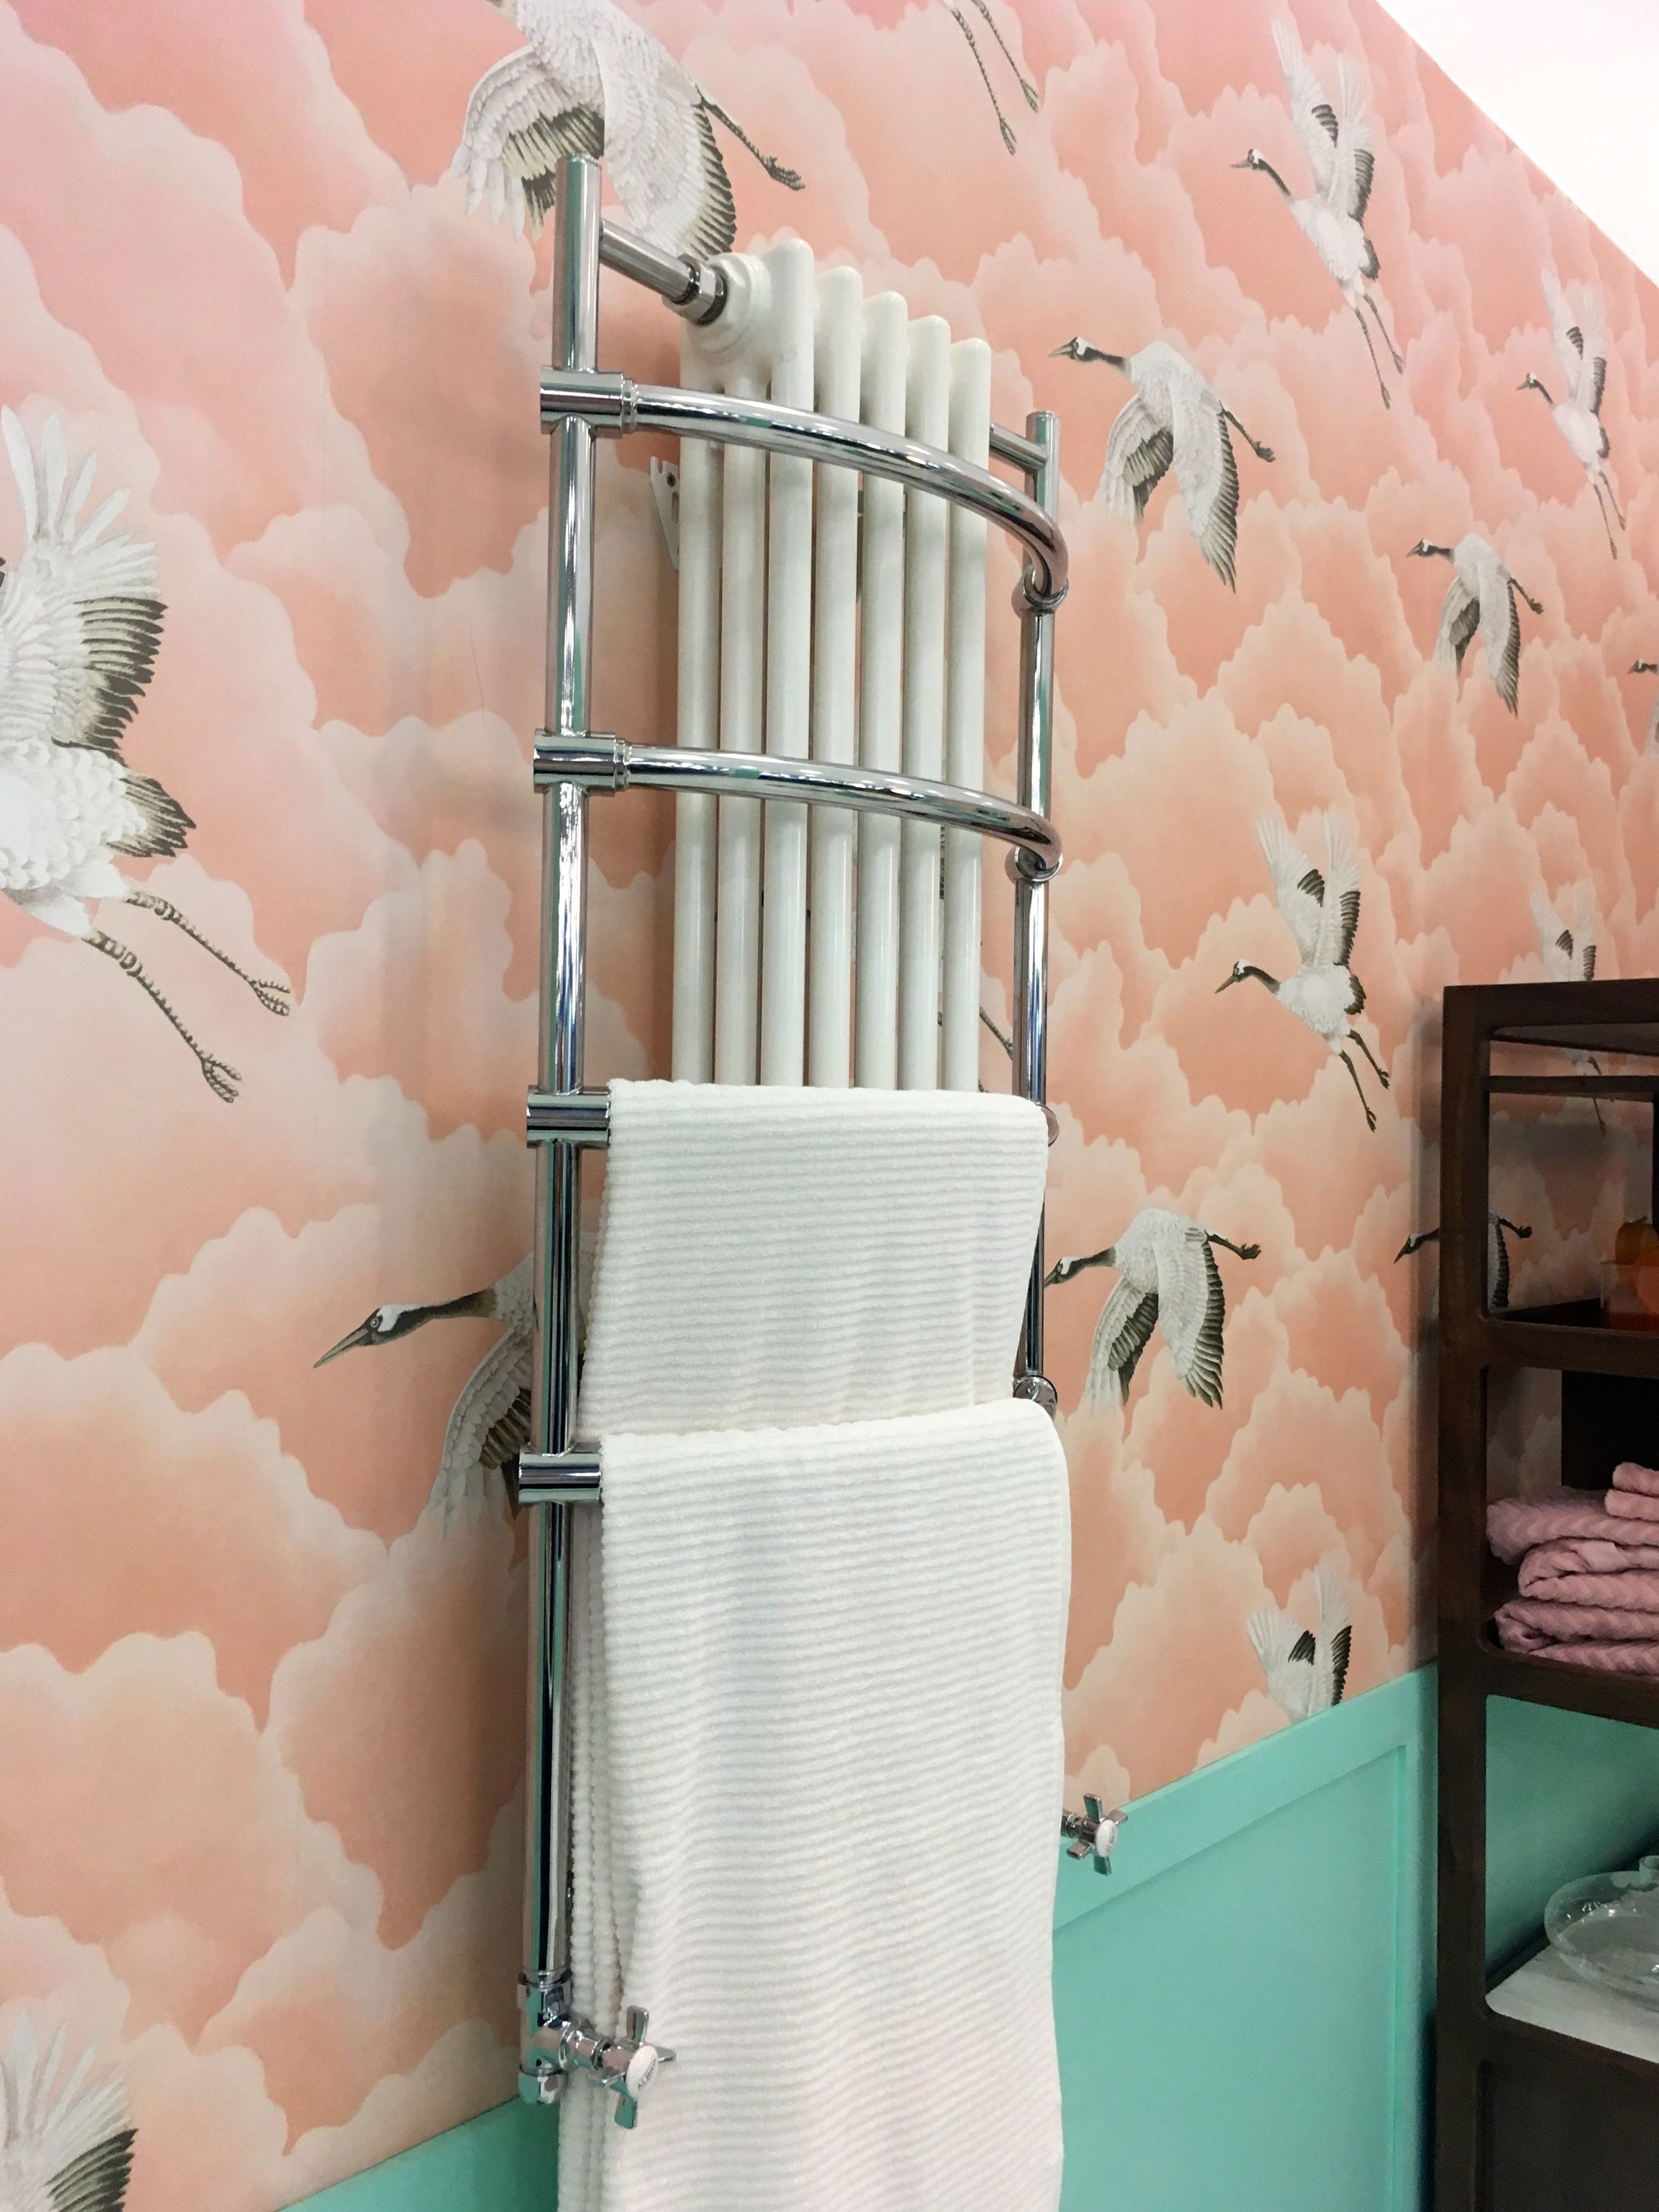 Even vintage bathrooms need somewhere to hang their towels